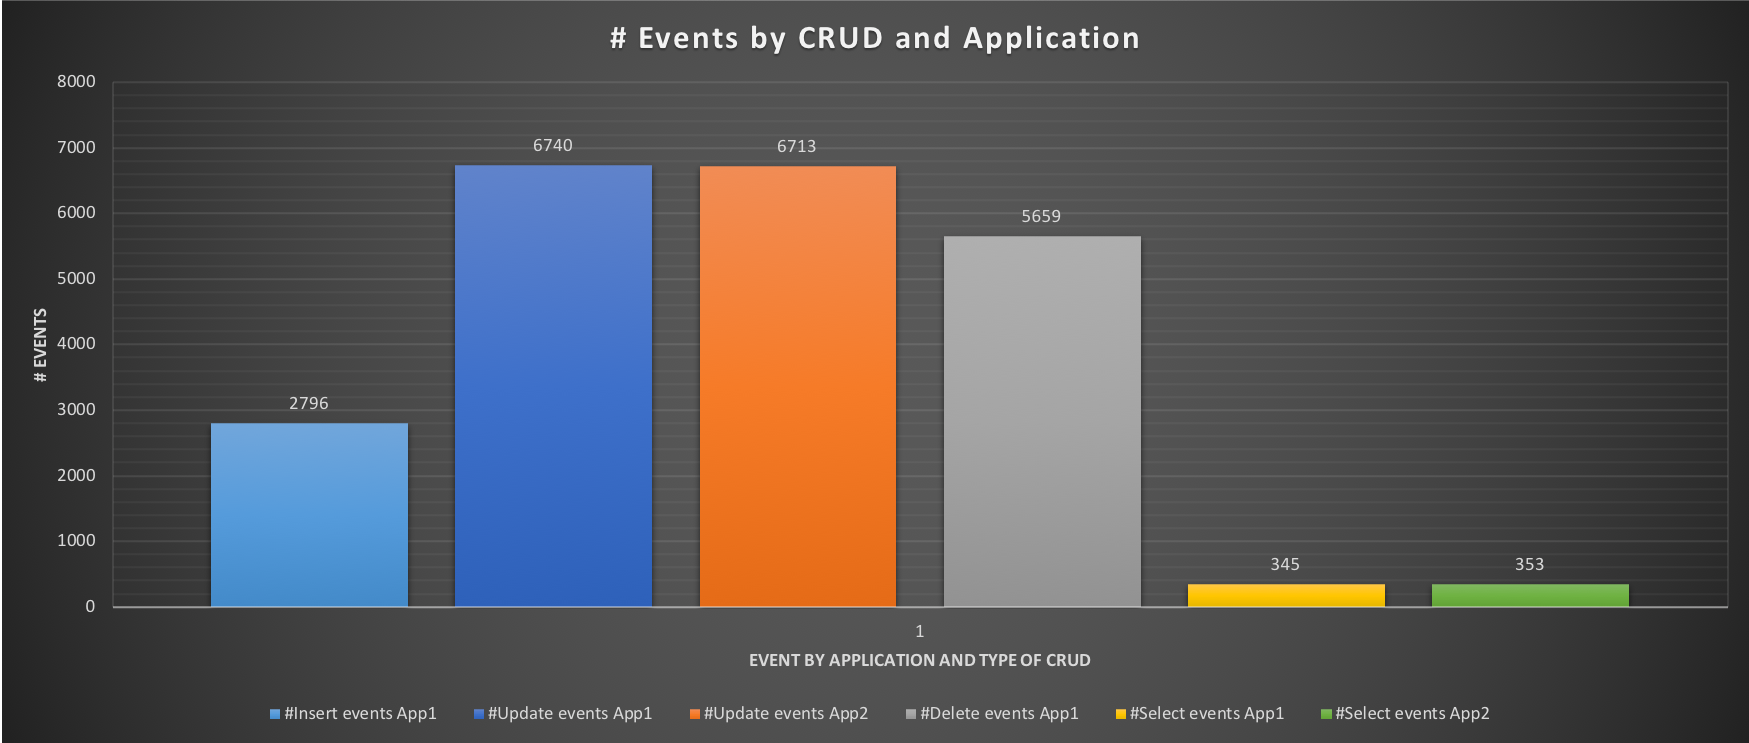 events_by_crud4